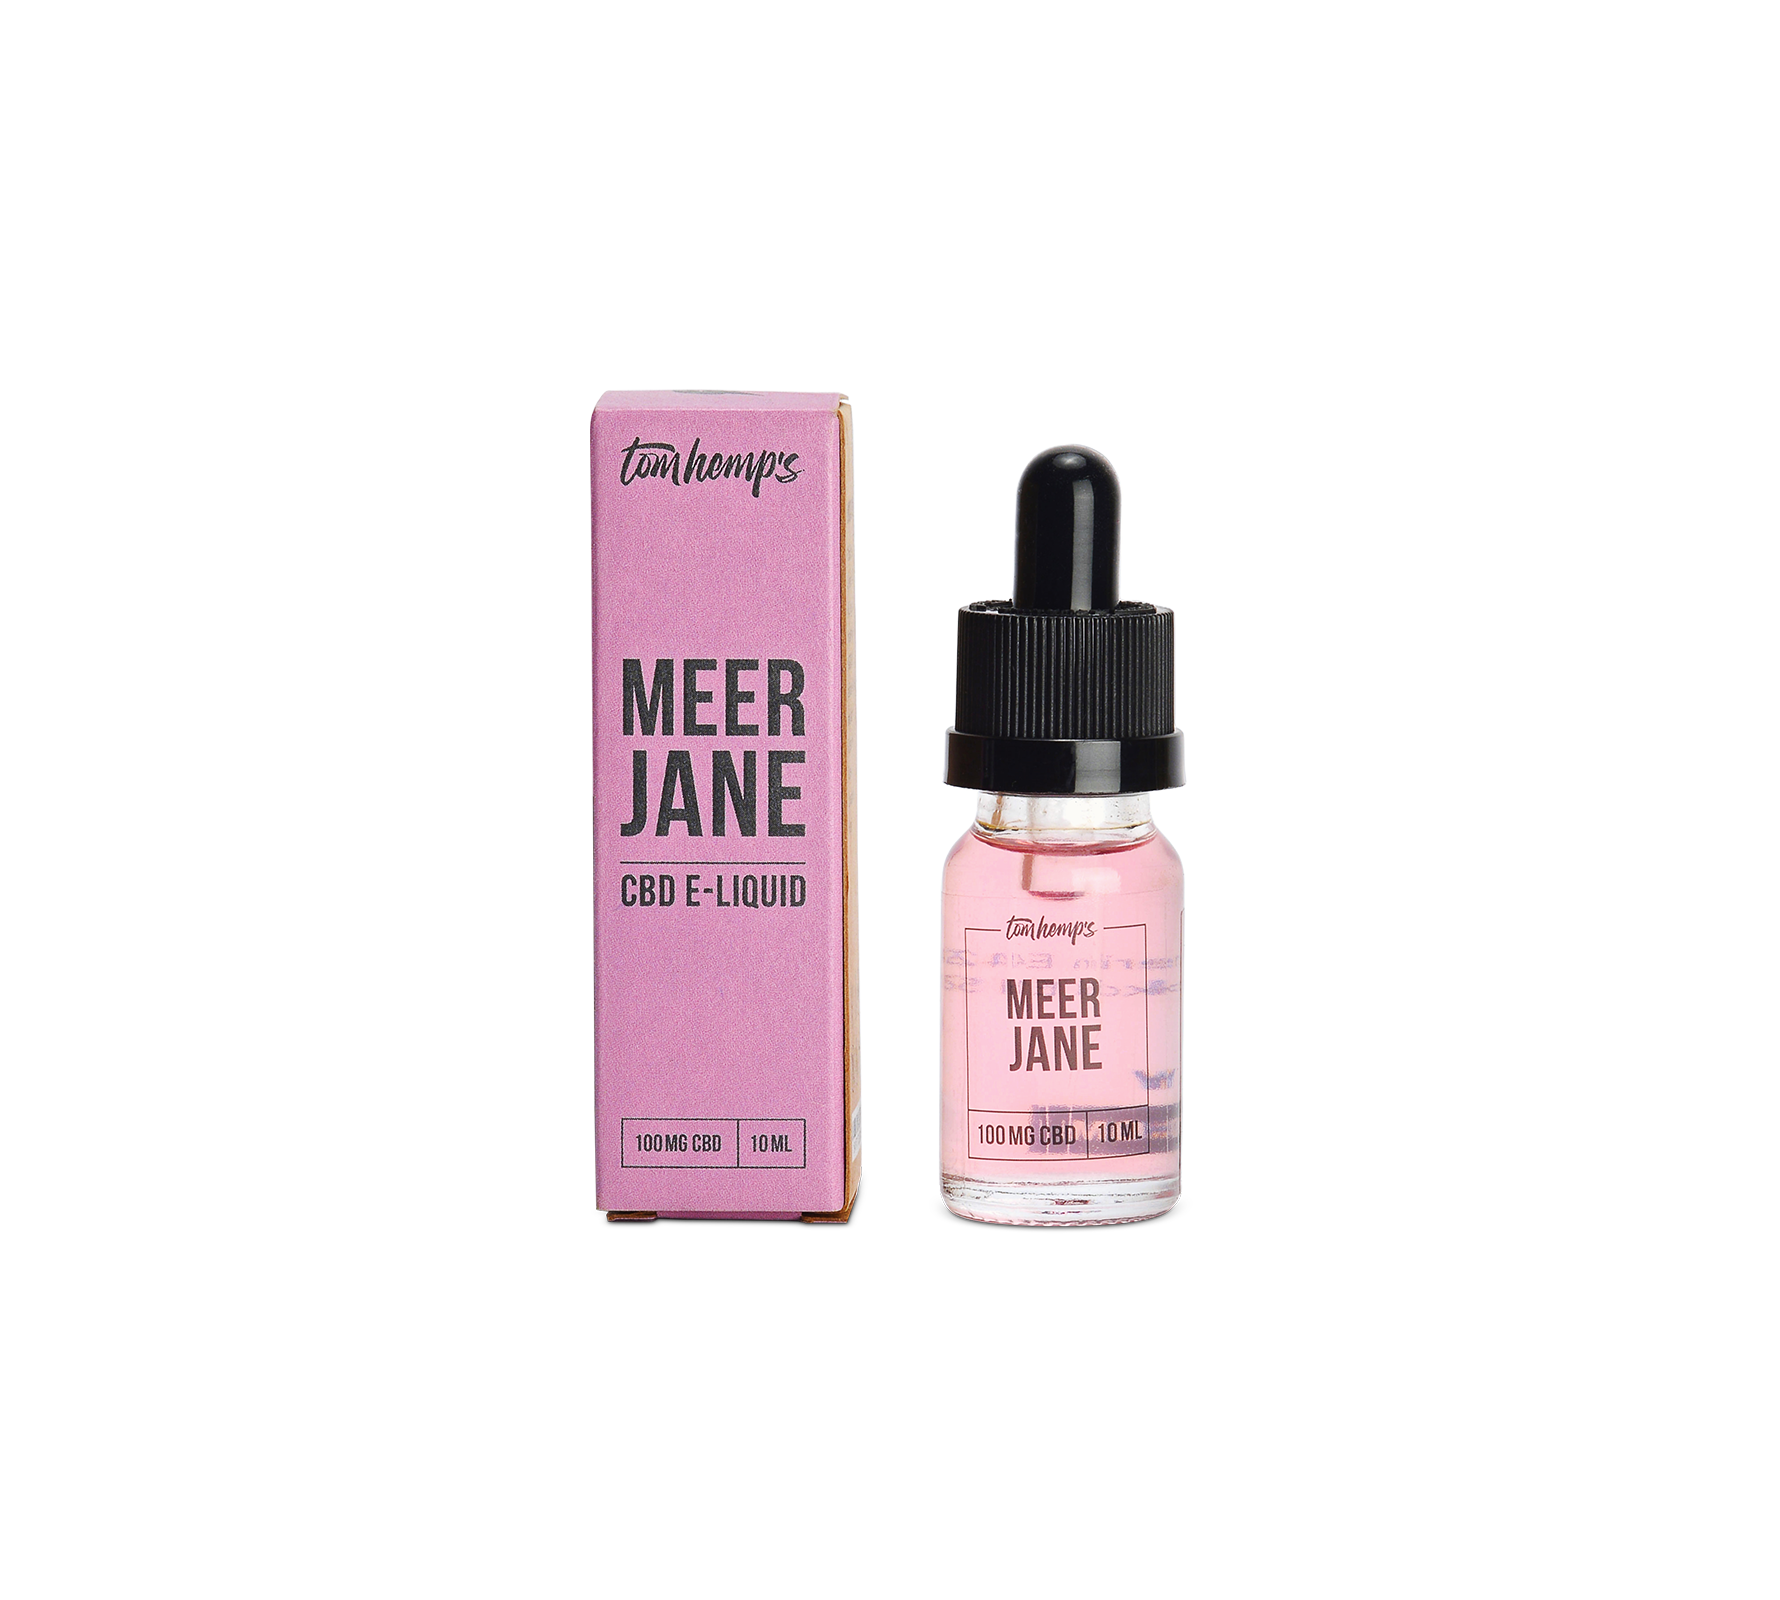 Tomhemps Cbd E Liquid Meerjane Pipette Desktop Detail Hd 1780×1600